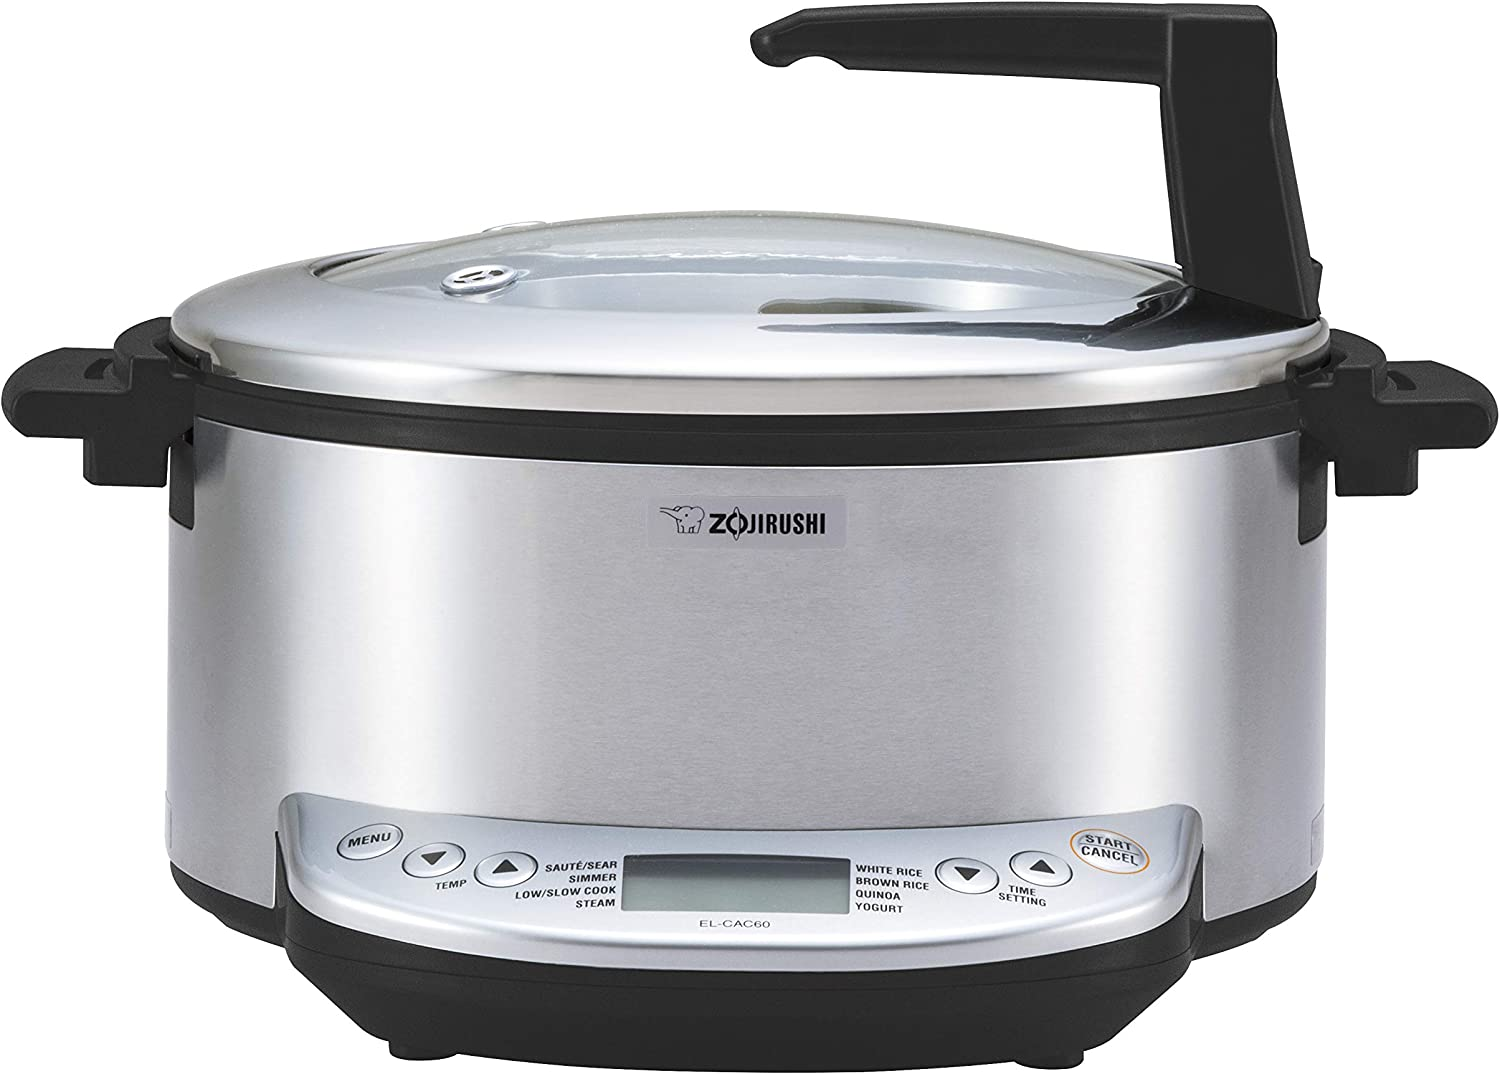 Zojirushi Brushed Stainless Steel Pressure Cookers